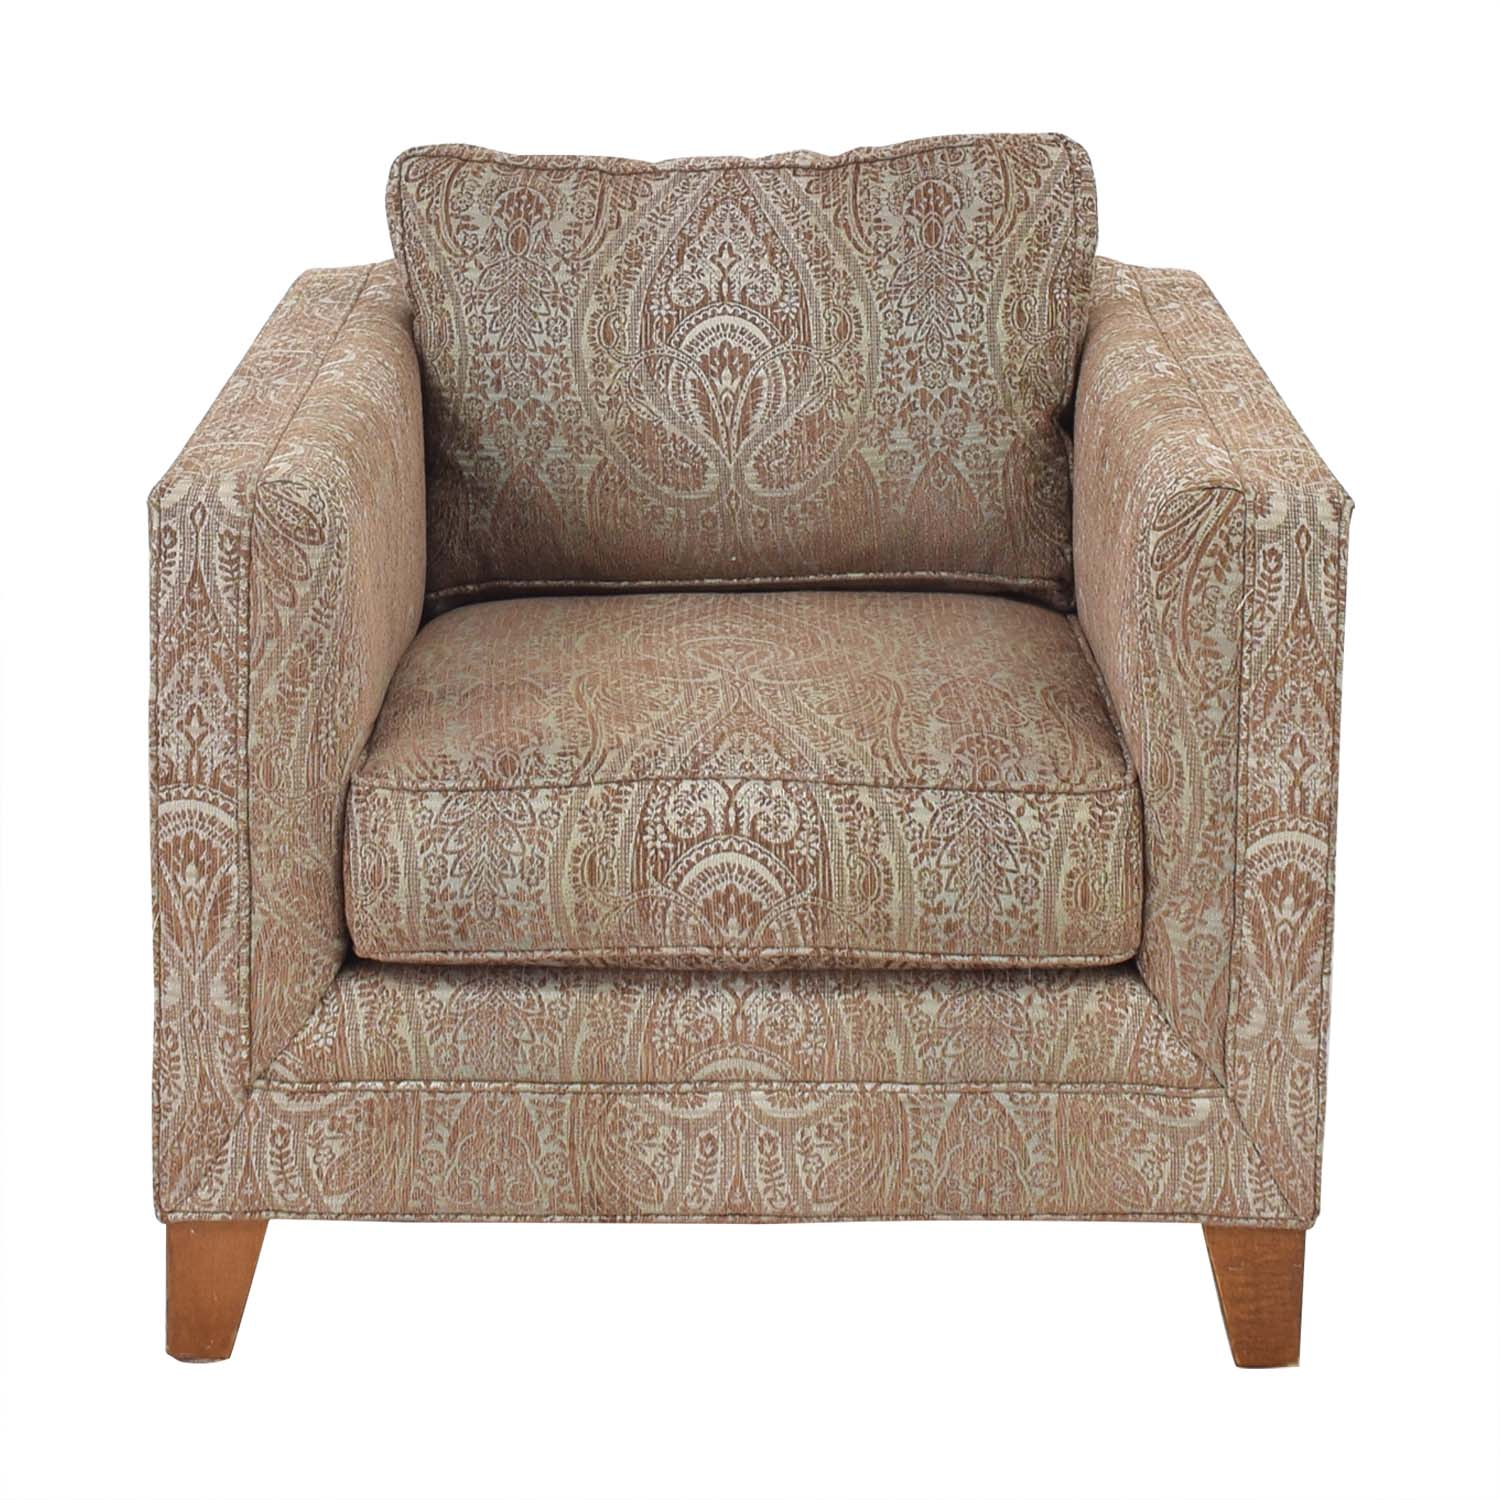 Crate & Barrel Crate & Barrel by Mitchell Gold + Bob Williams Paisley Print Club Chair multi